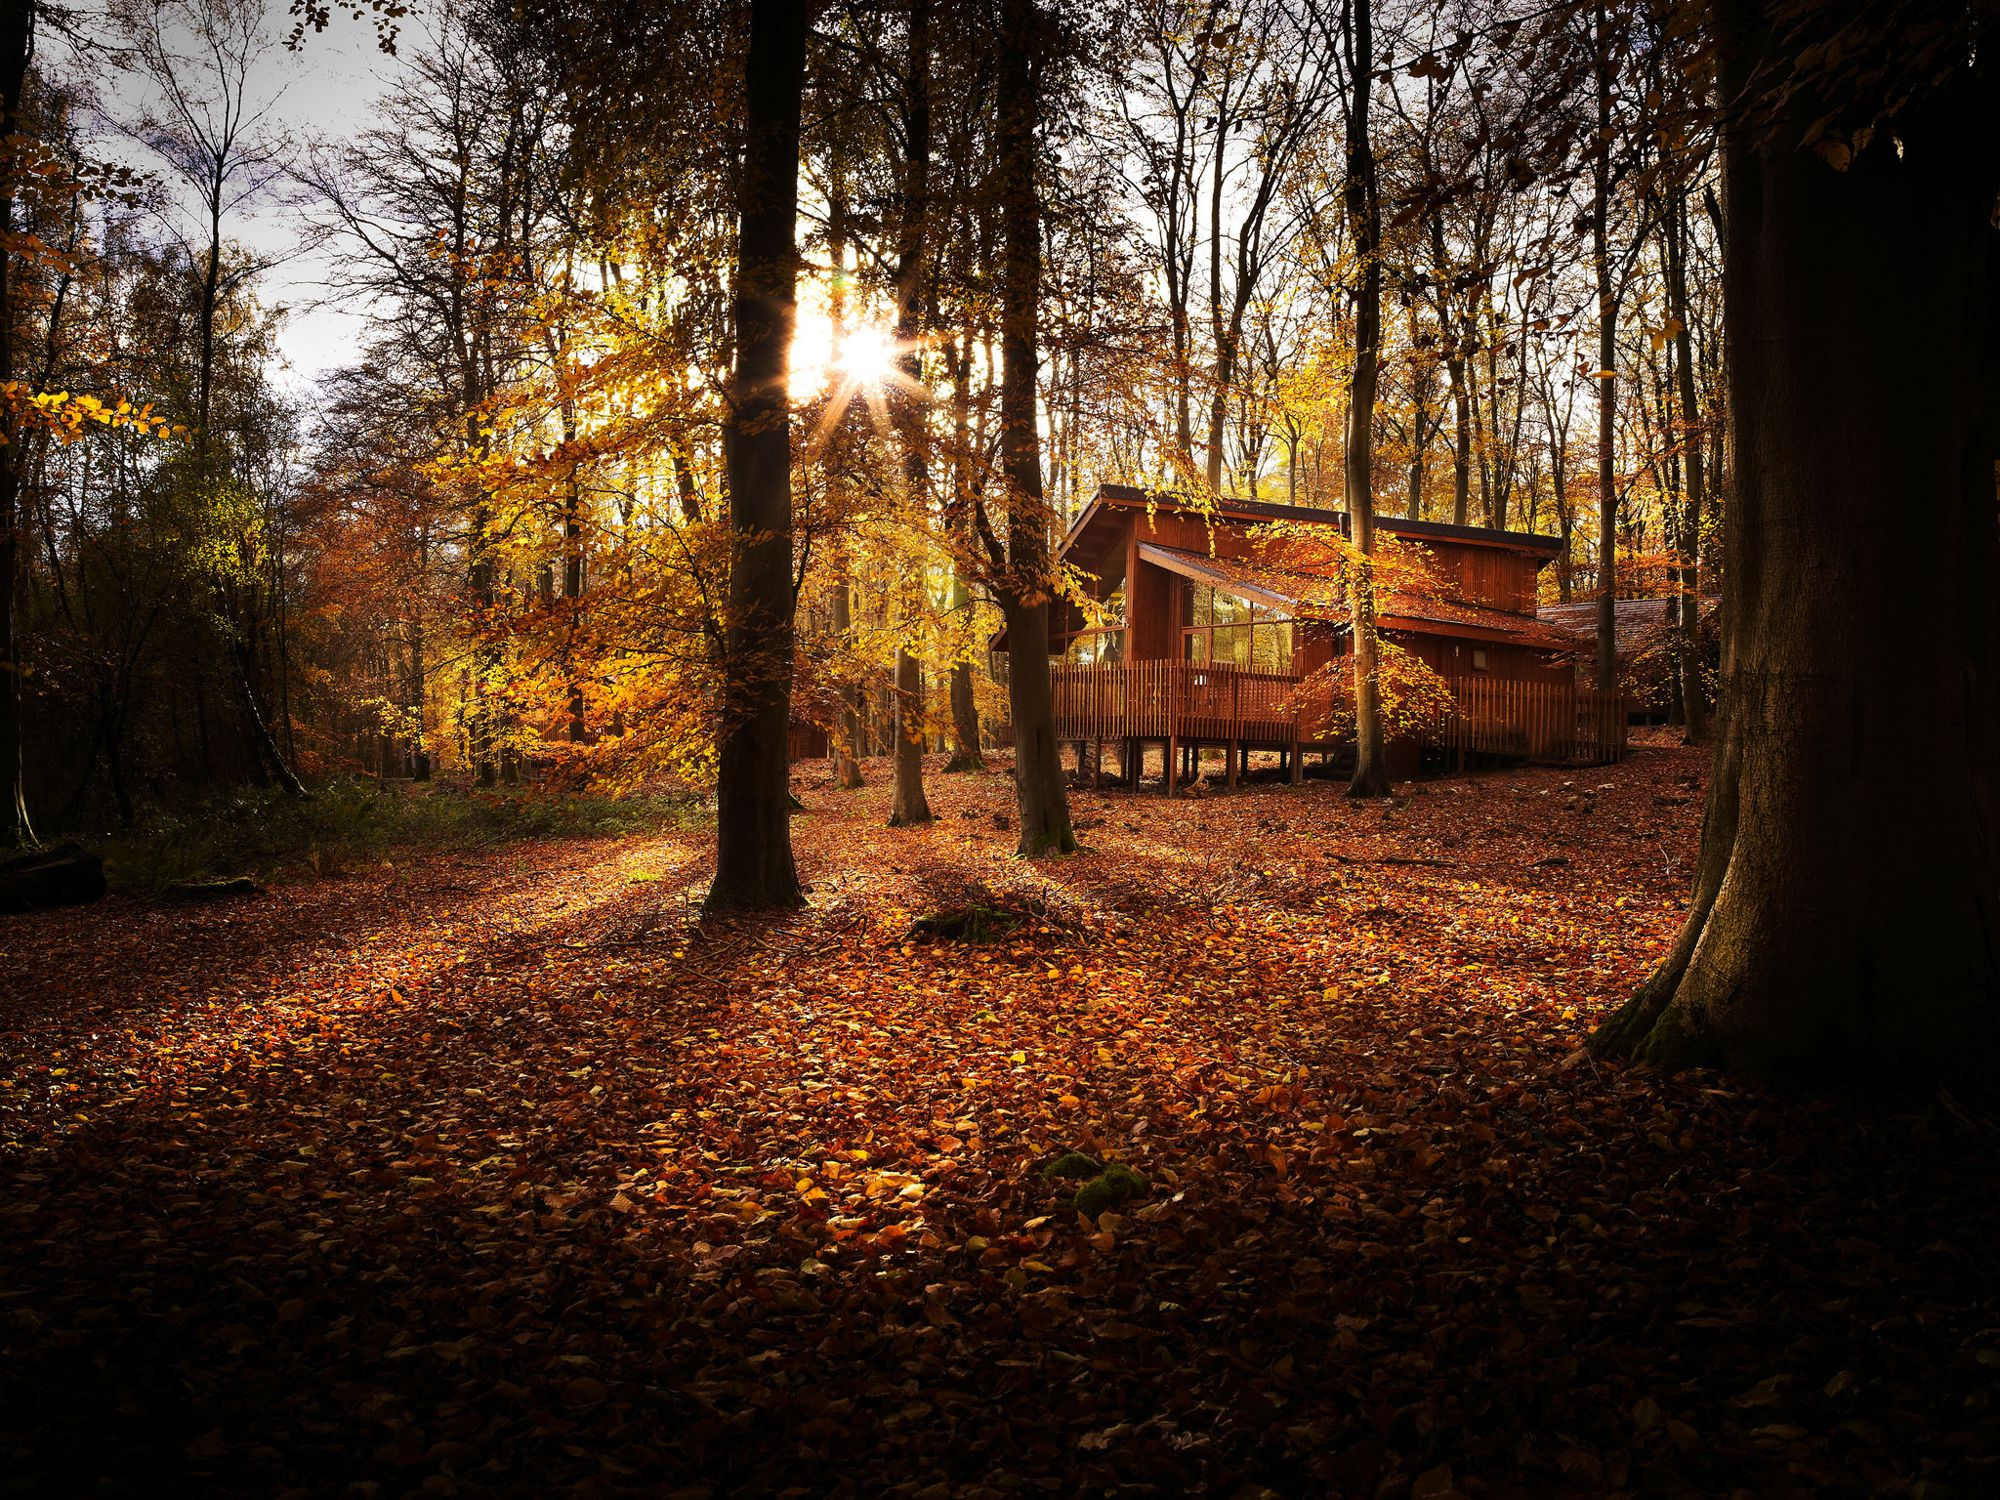 Self-Catering in Hampshire holidays at Cool Places